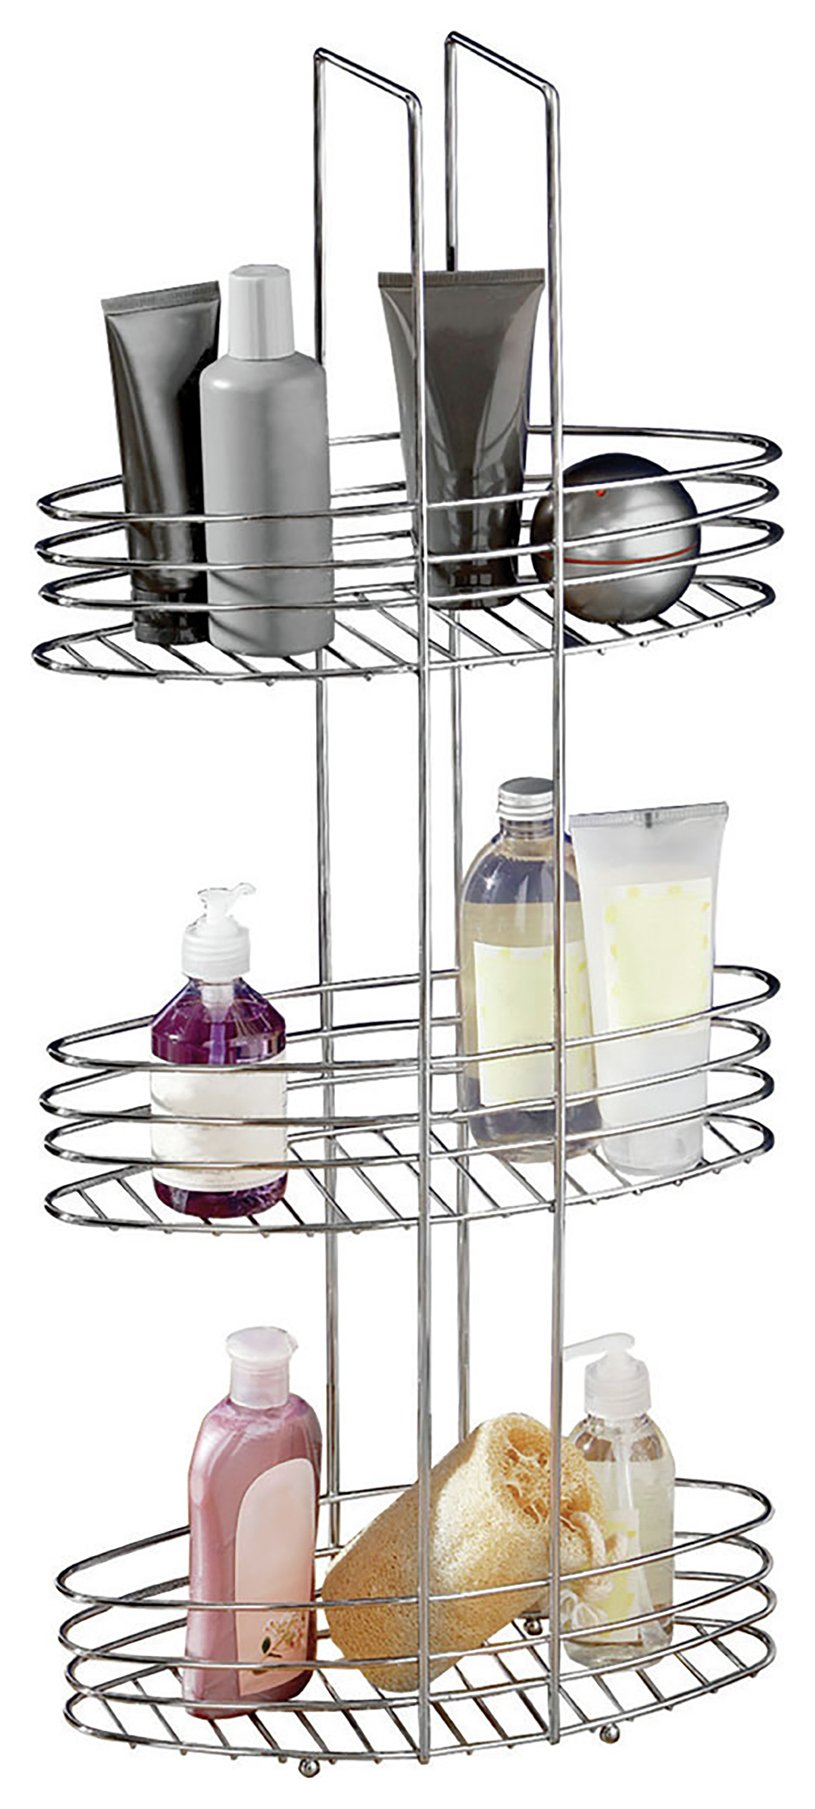 Bathroom Organiser buy premier housewares 3 tier bathroom organiser - chrome at argos